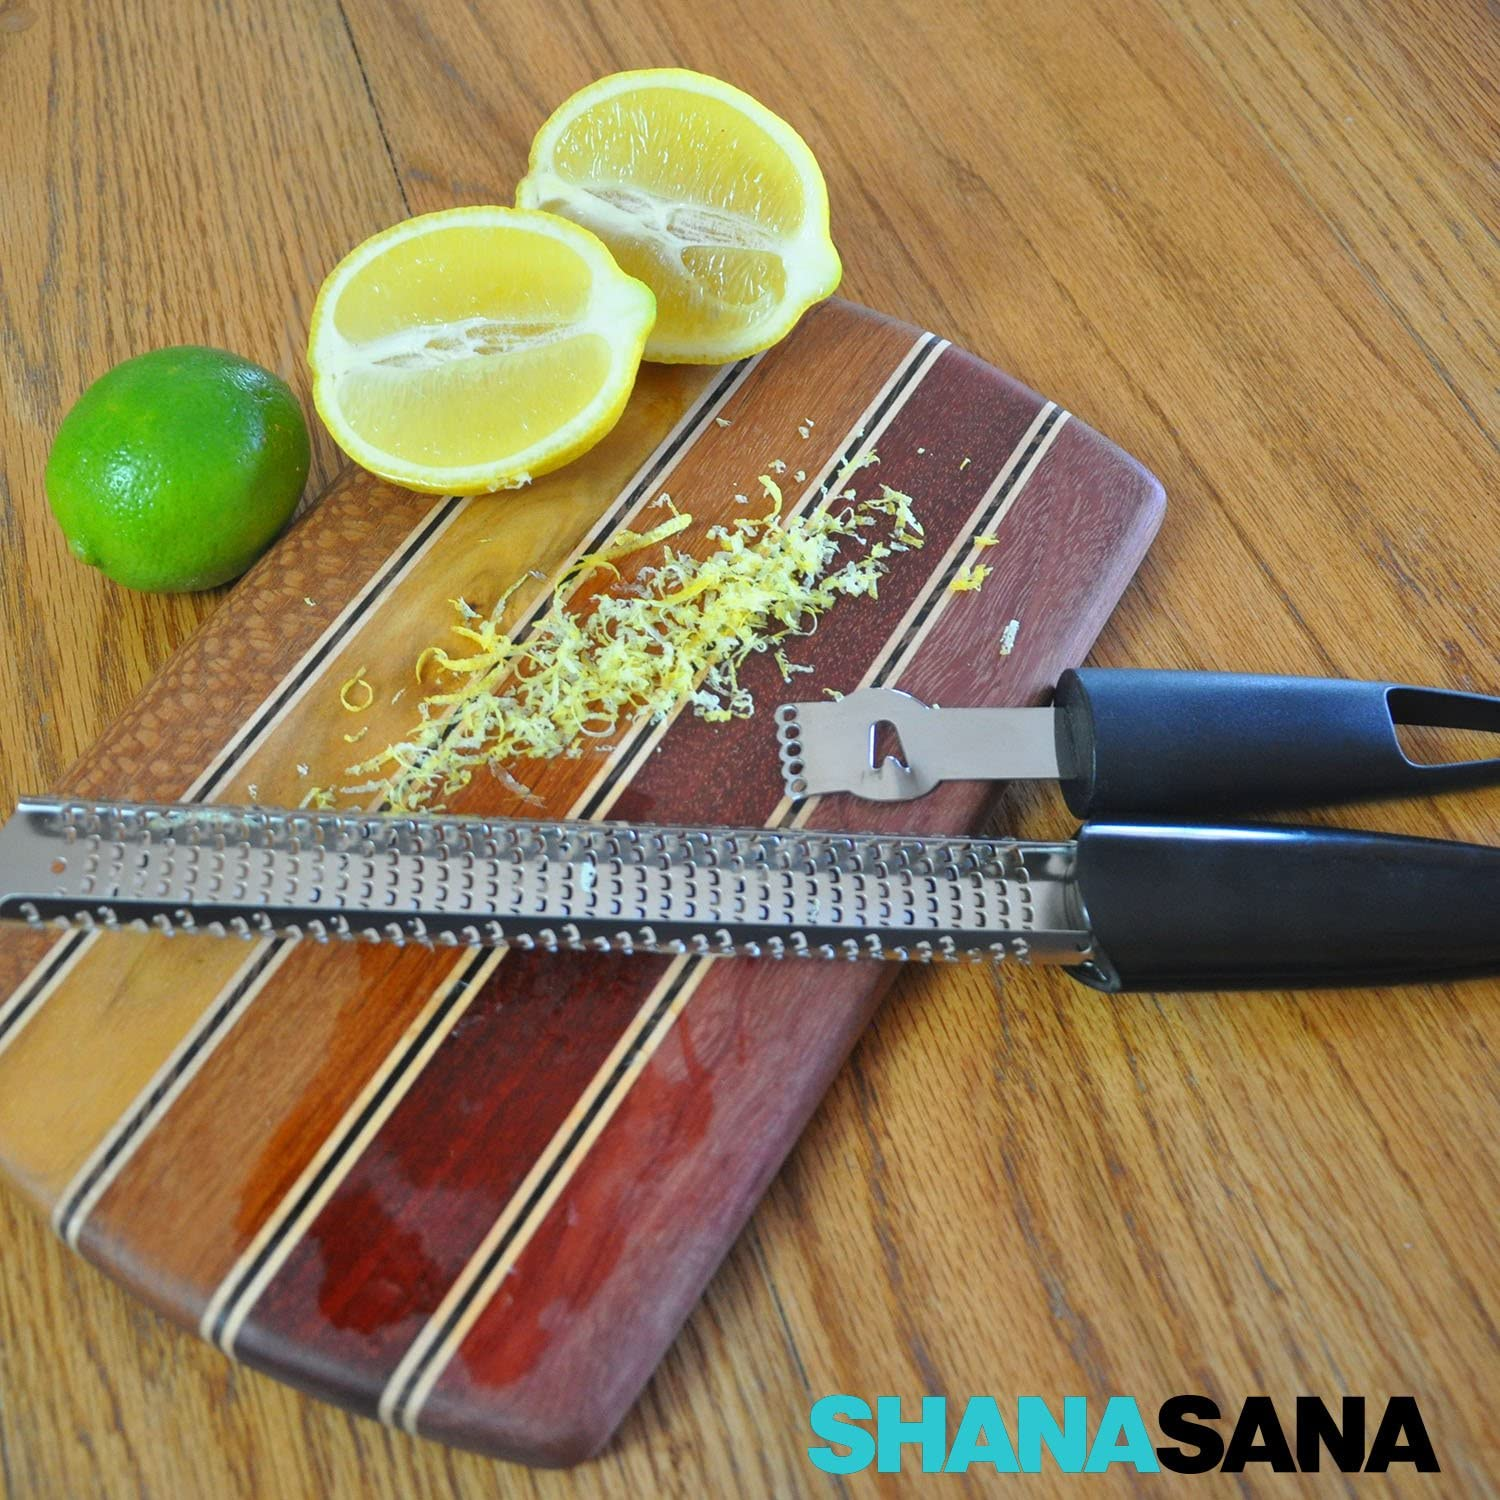 Compact Lemon Zester HEAVY DUTY STAINLESS STEEL Oranges and Other Citrus Fruits Perfect for Zesting Lemons